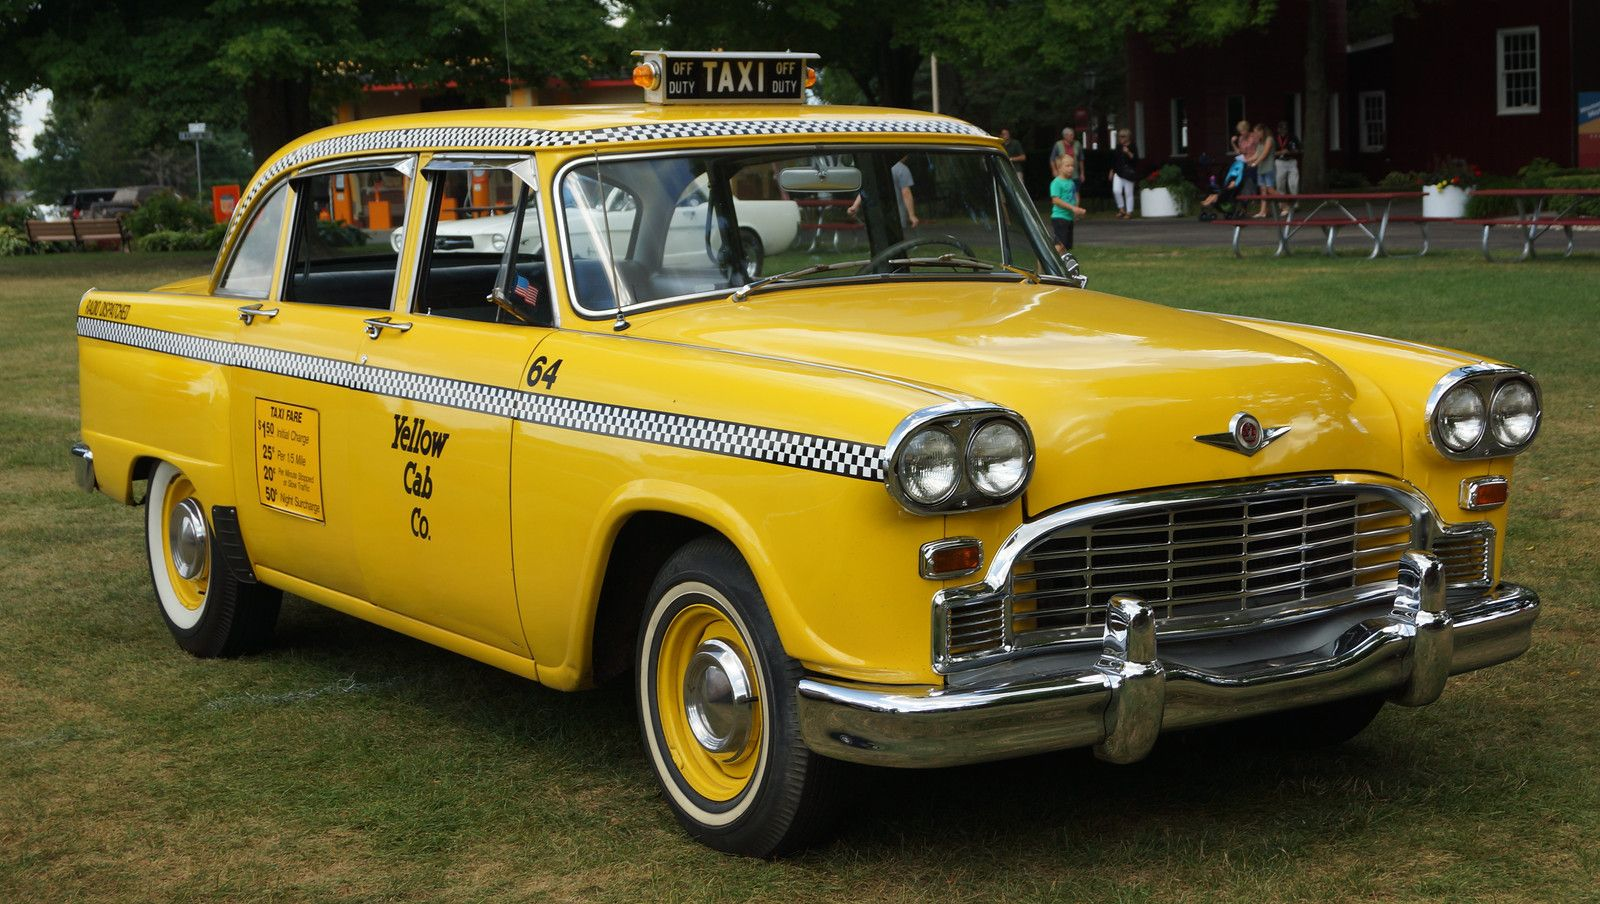 Pin By David Gilchrist On Bus Taxi In 2020 Checker Taxi Cab Taxi Cab Checker Cab Cars